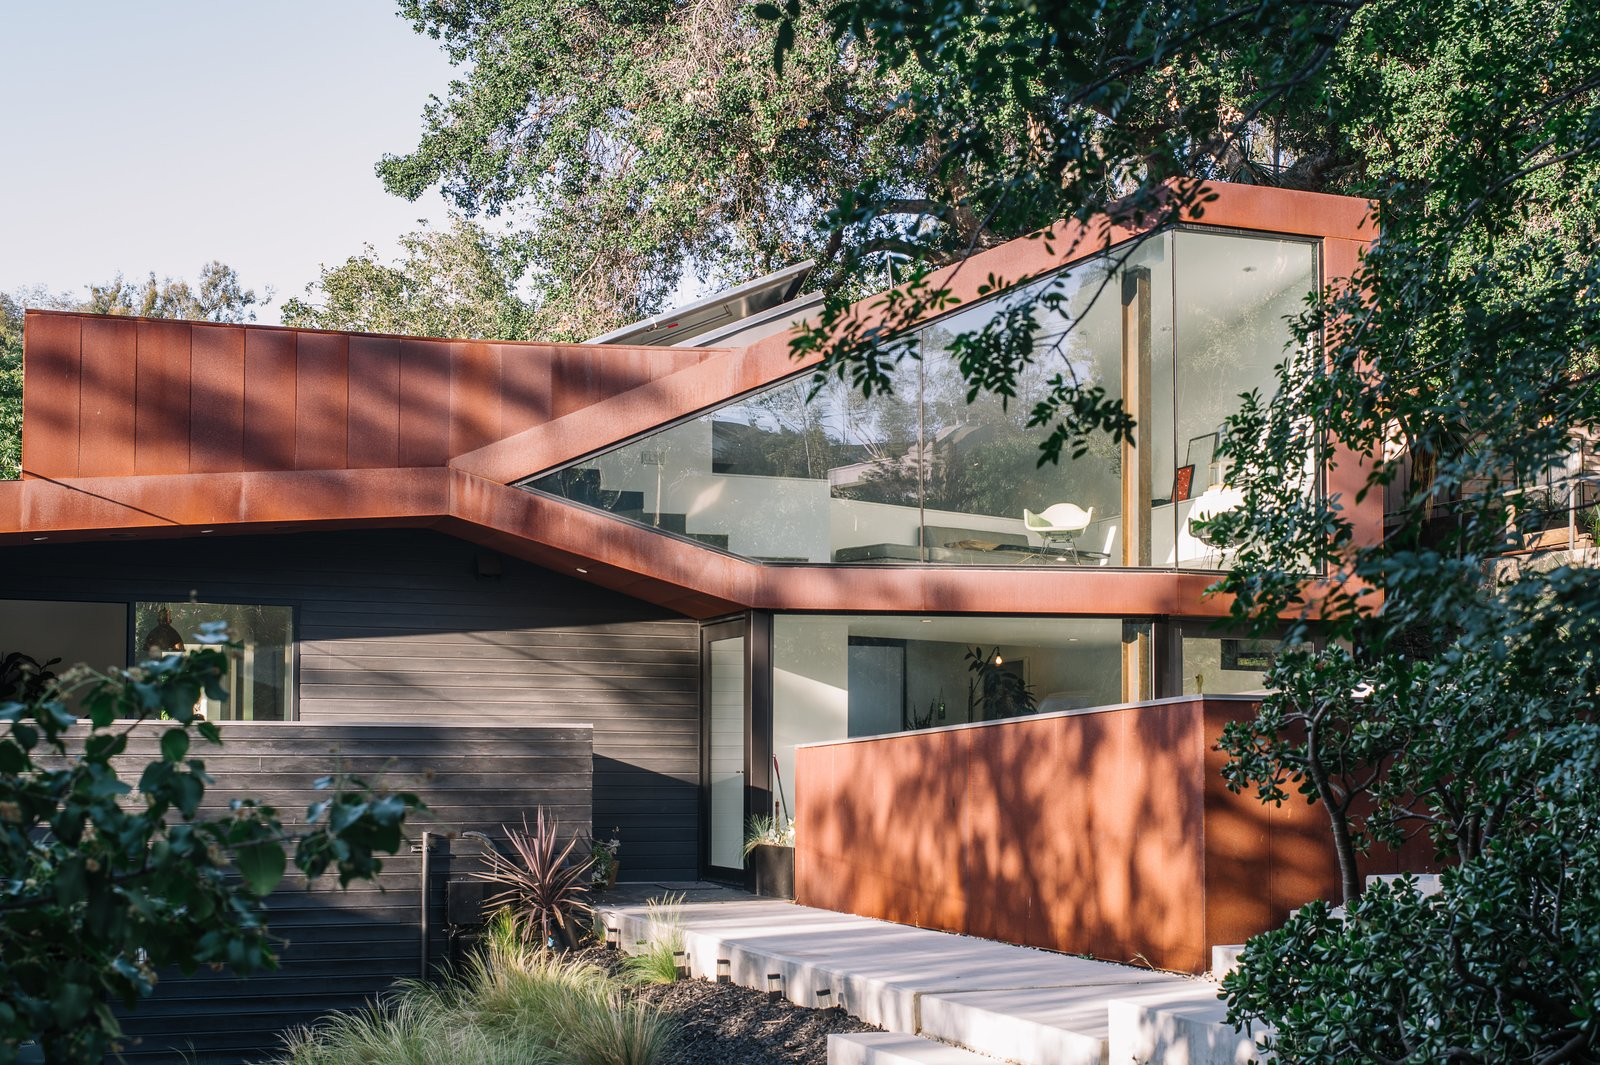 Exterior, House Building Type, Metal Siding Material, Wood Siding Material, Glass Siding Material, and Metal Roof Material Resident Richard Kim, who works as the head of design at electric car company Faraday Future, tested his know-how with the creation of his own Los Angeles home, a curvilinear structure clad in Cor-Ten steel and black-stained cedar.  Best Photos from This Los Angeles Home is Driven by Automotive Design